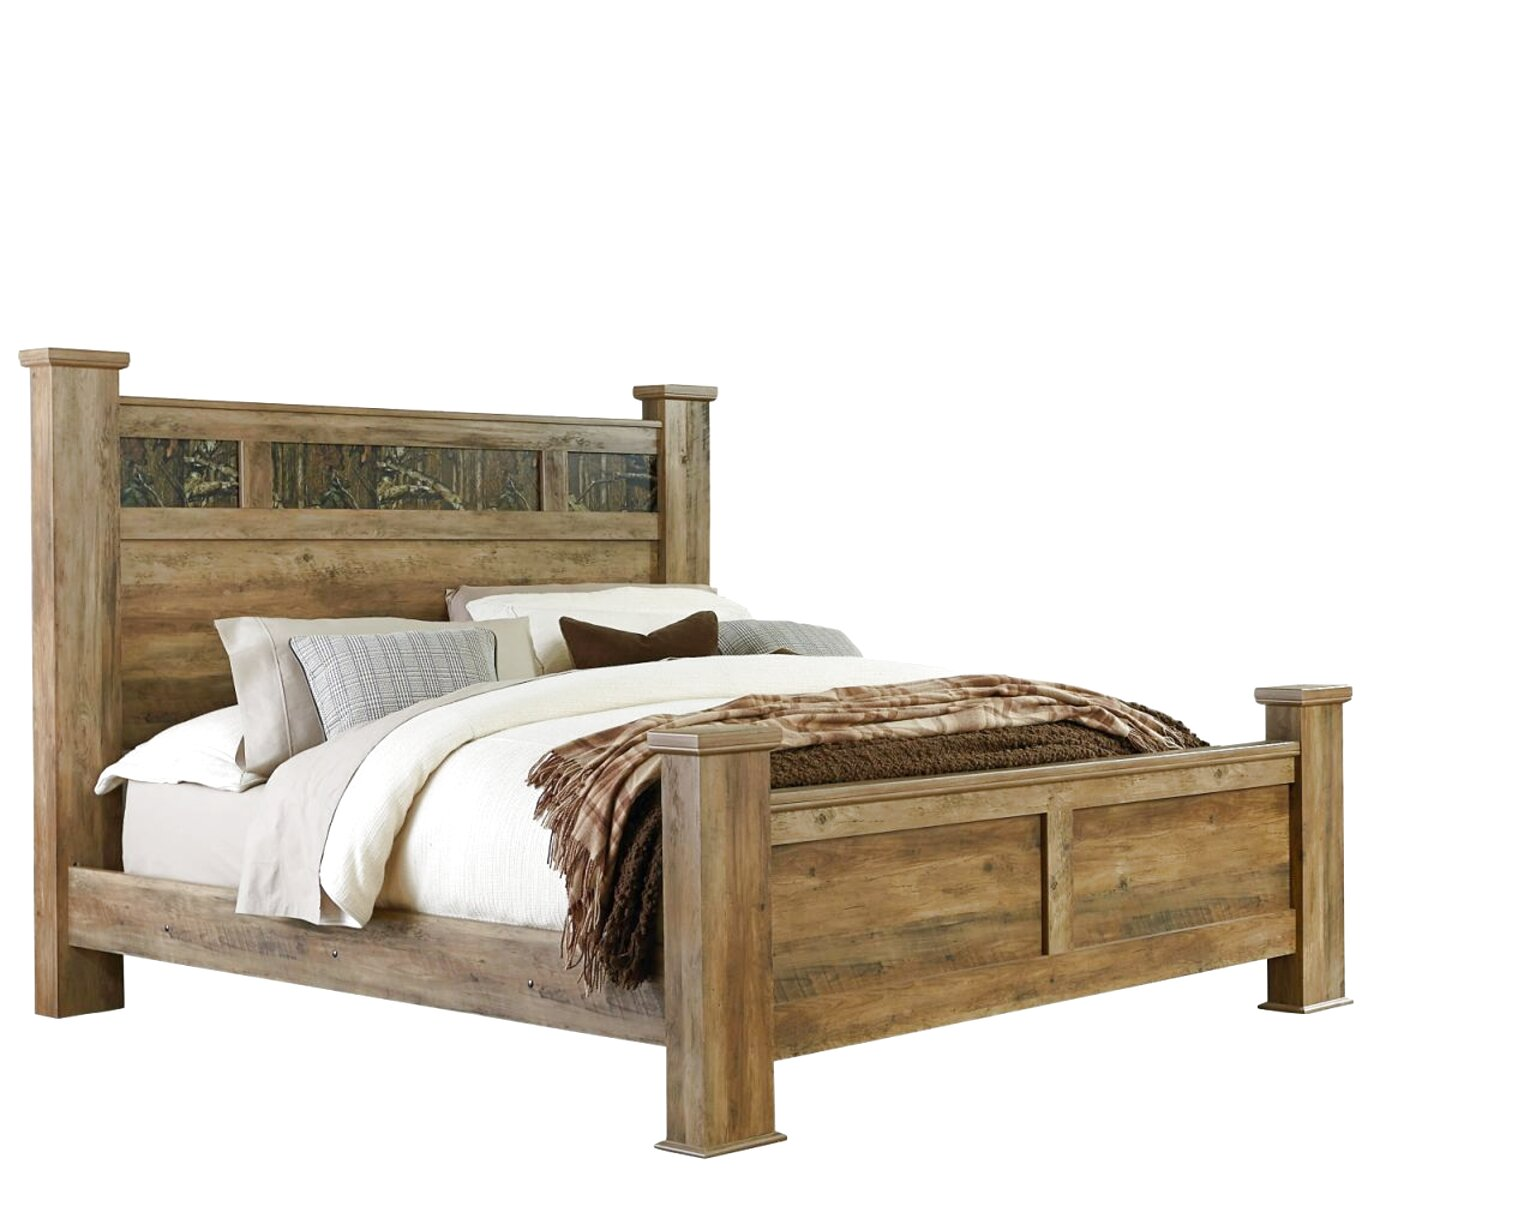 habitat bed for sale